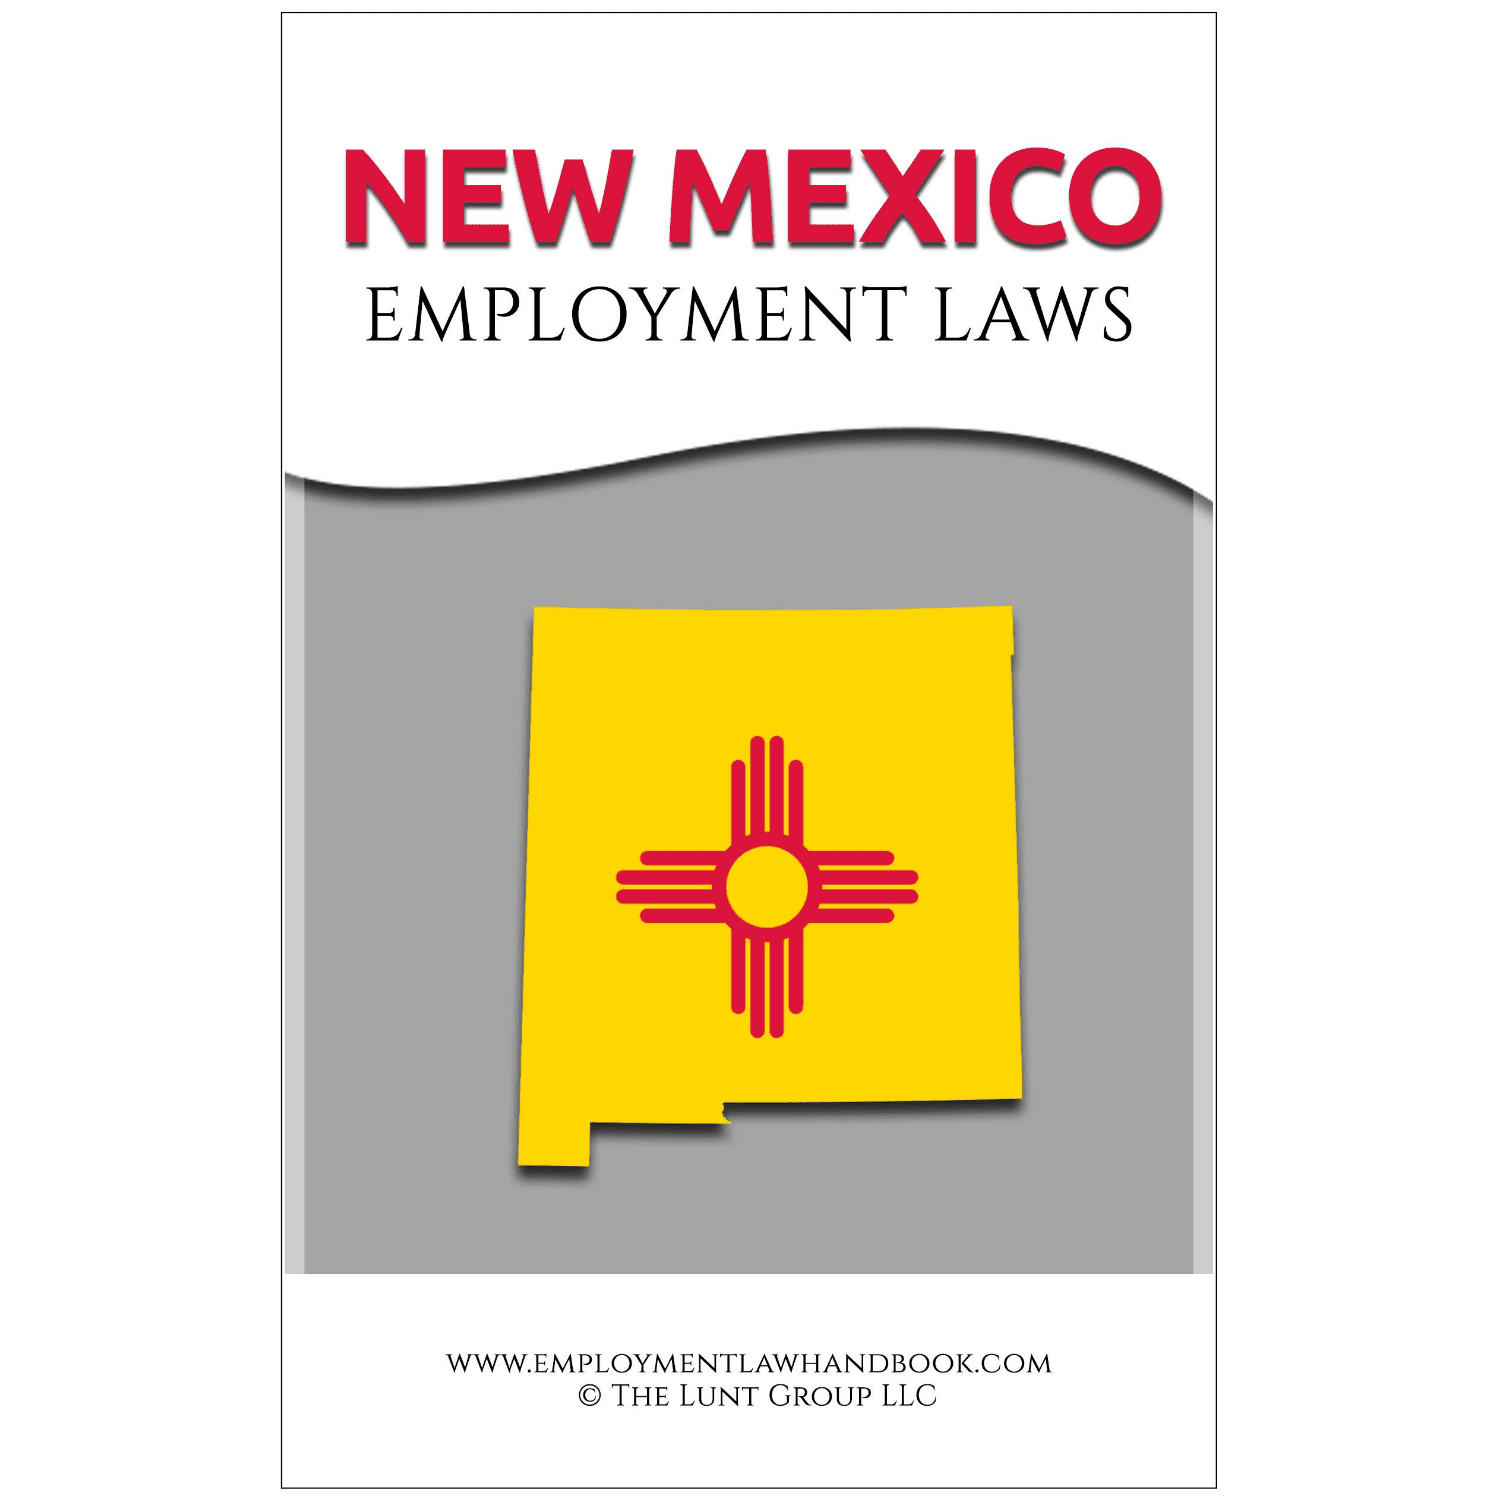 dating a minor in new mexico Find more information about medical marijuana laws in new mexico learn more about local policies and regulations from marijuana doctors.